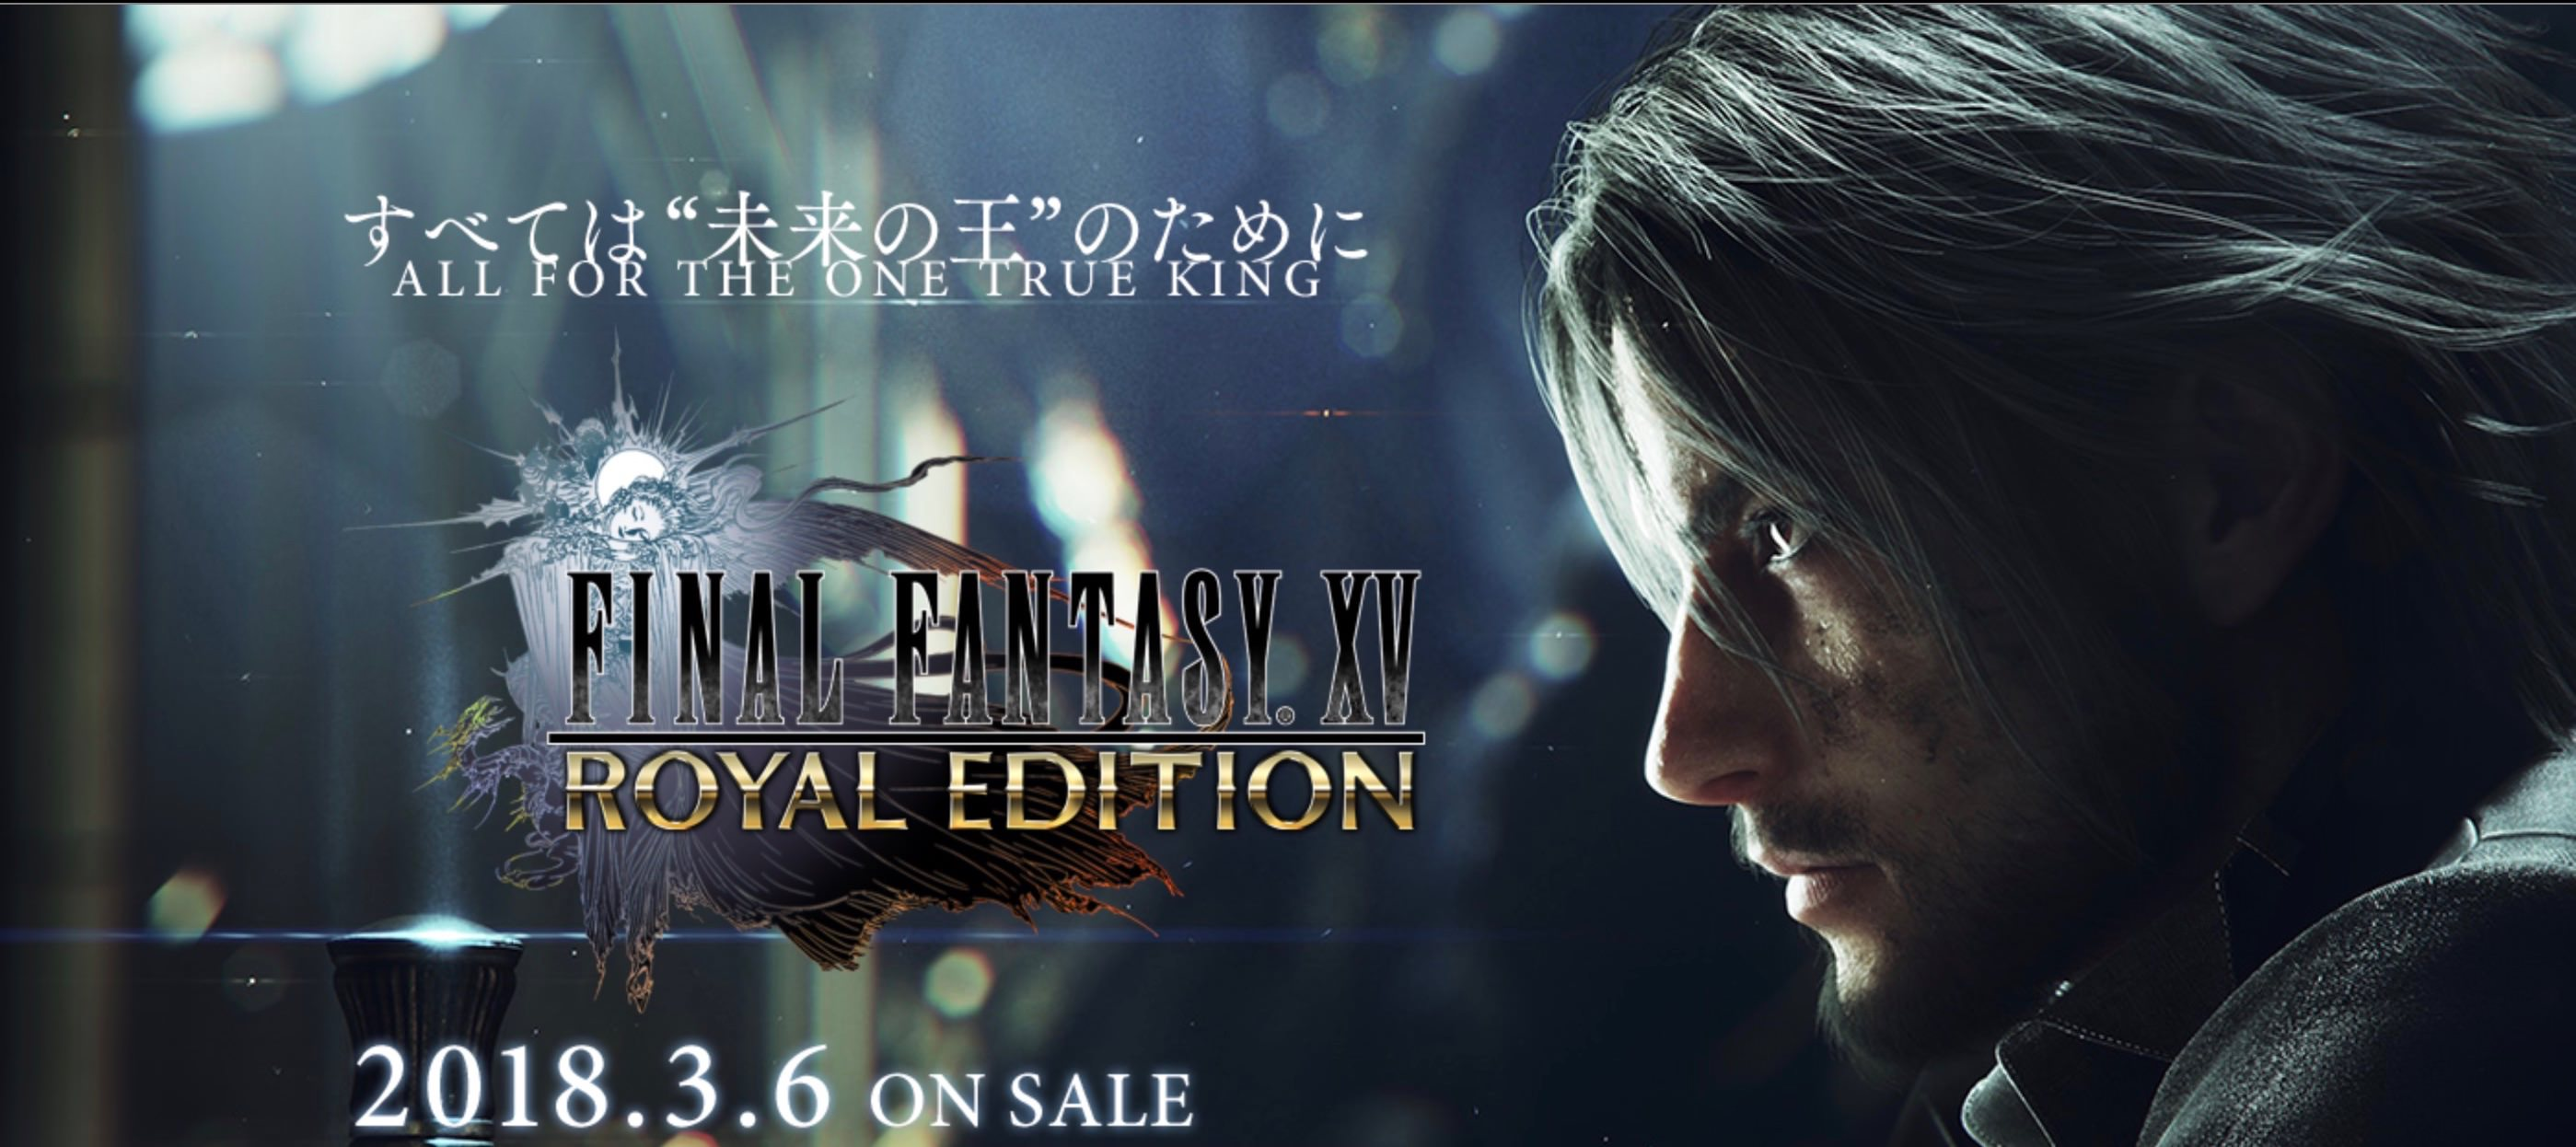 Ff15 royal edition release